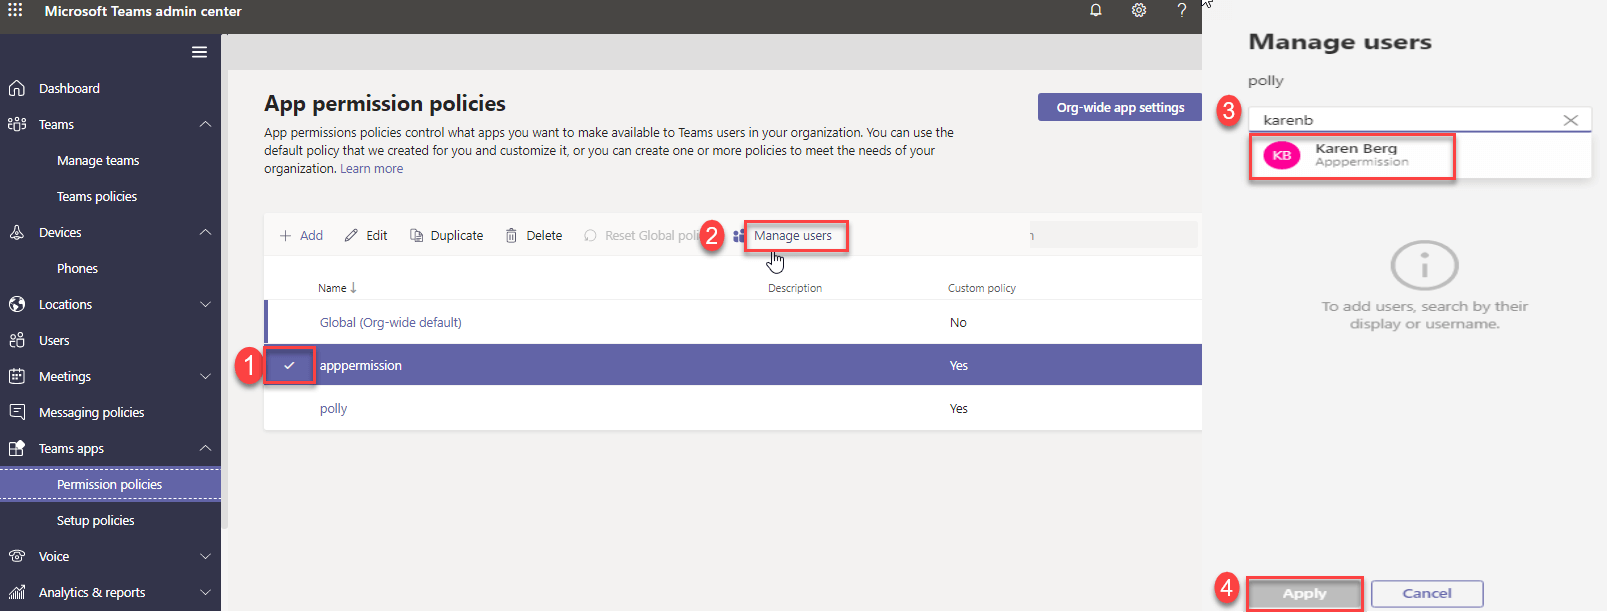 Microsoft Teams App Permission Policy